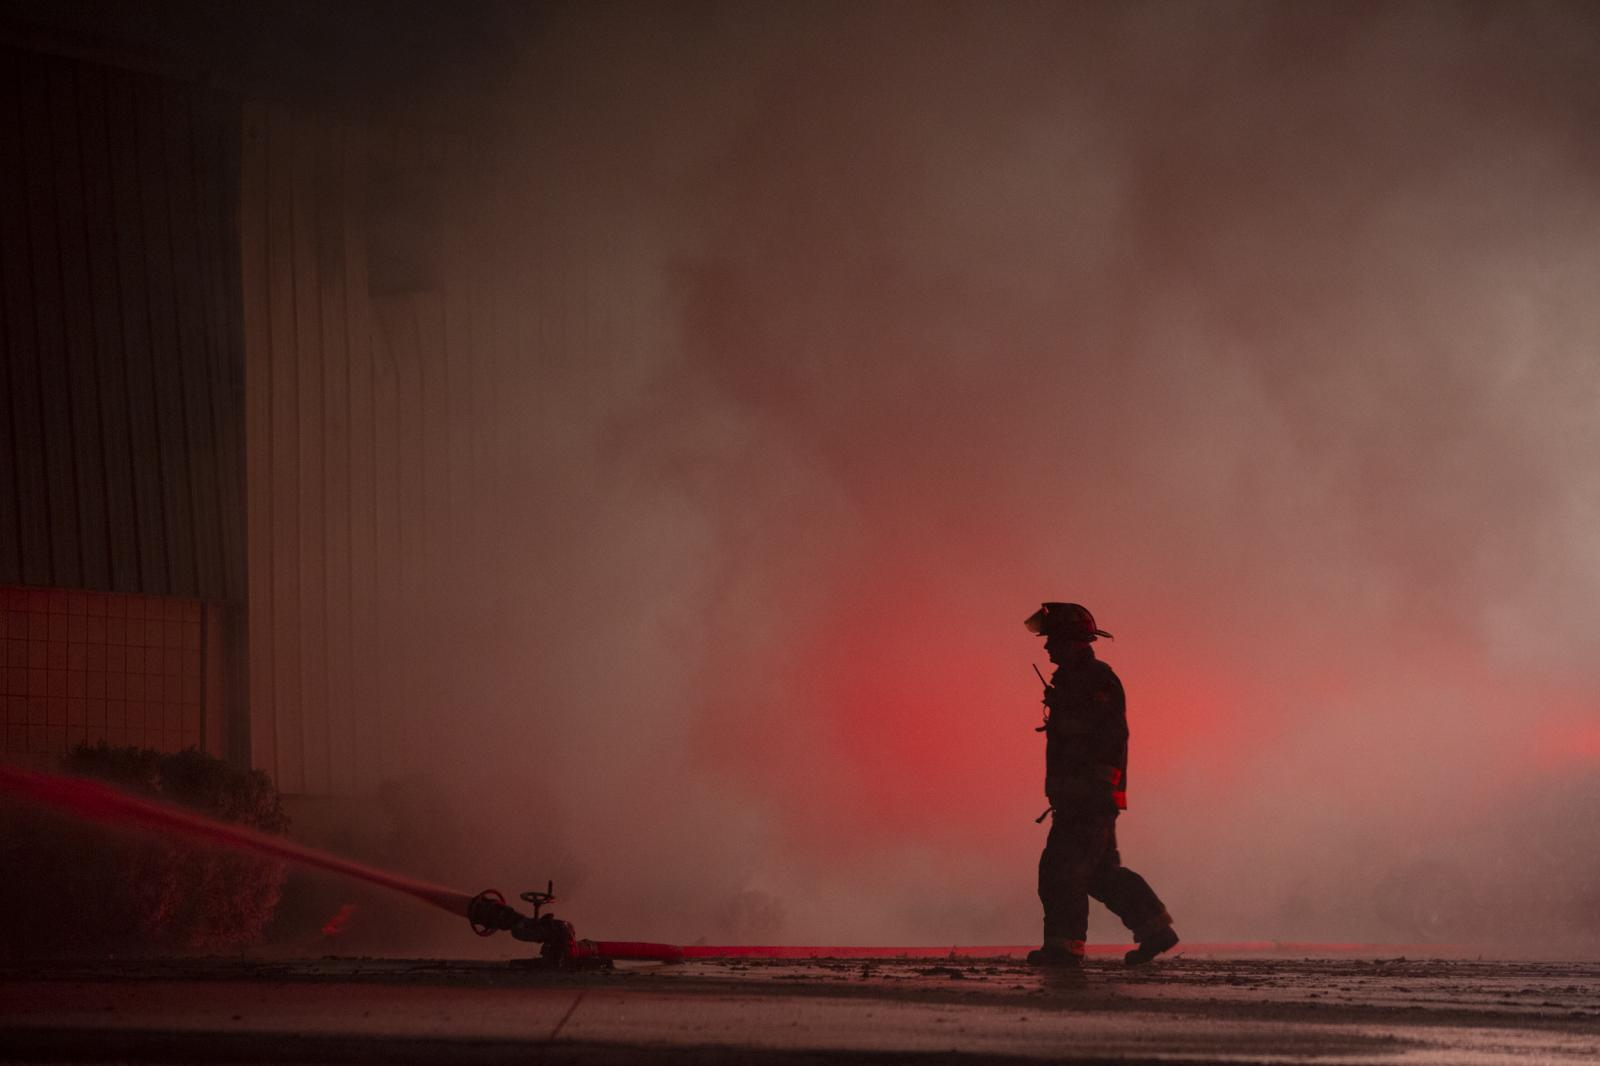 A firefighter monitors a hose as crews from multiple departments battle a large fire that broke out over night at Muskegon Casting Corporation at 2325 S. Sheridan Dr. in Muskegon, Mich. on March 15, 2017. Muskegon Public Safety Director Jeffrey Lewis said an estimated 40 employees evacuated safely from the fire, which is believed to be caused by an equipment malfunction that created a spark to combustibles in the foundry, which is full of oils and metallurgic dust.